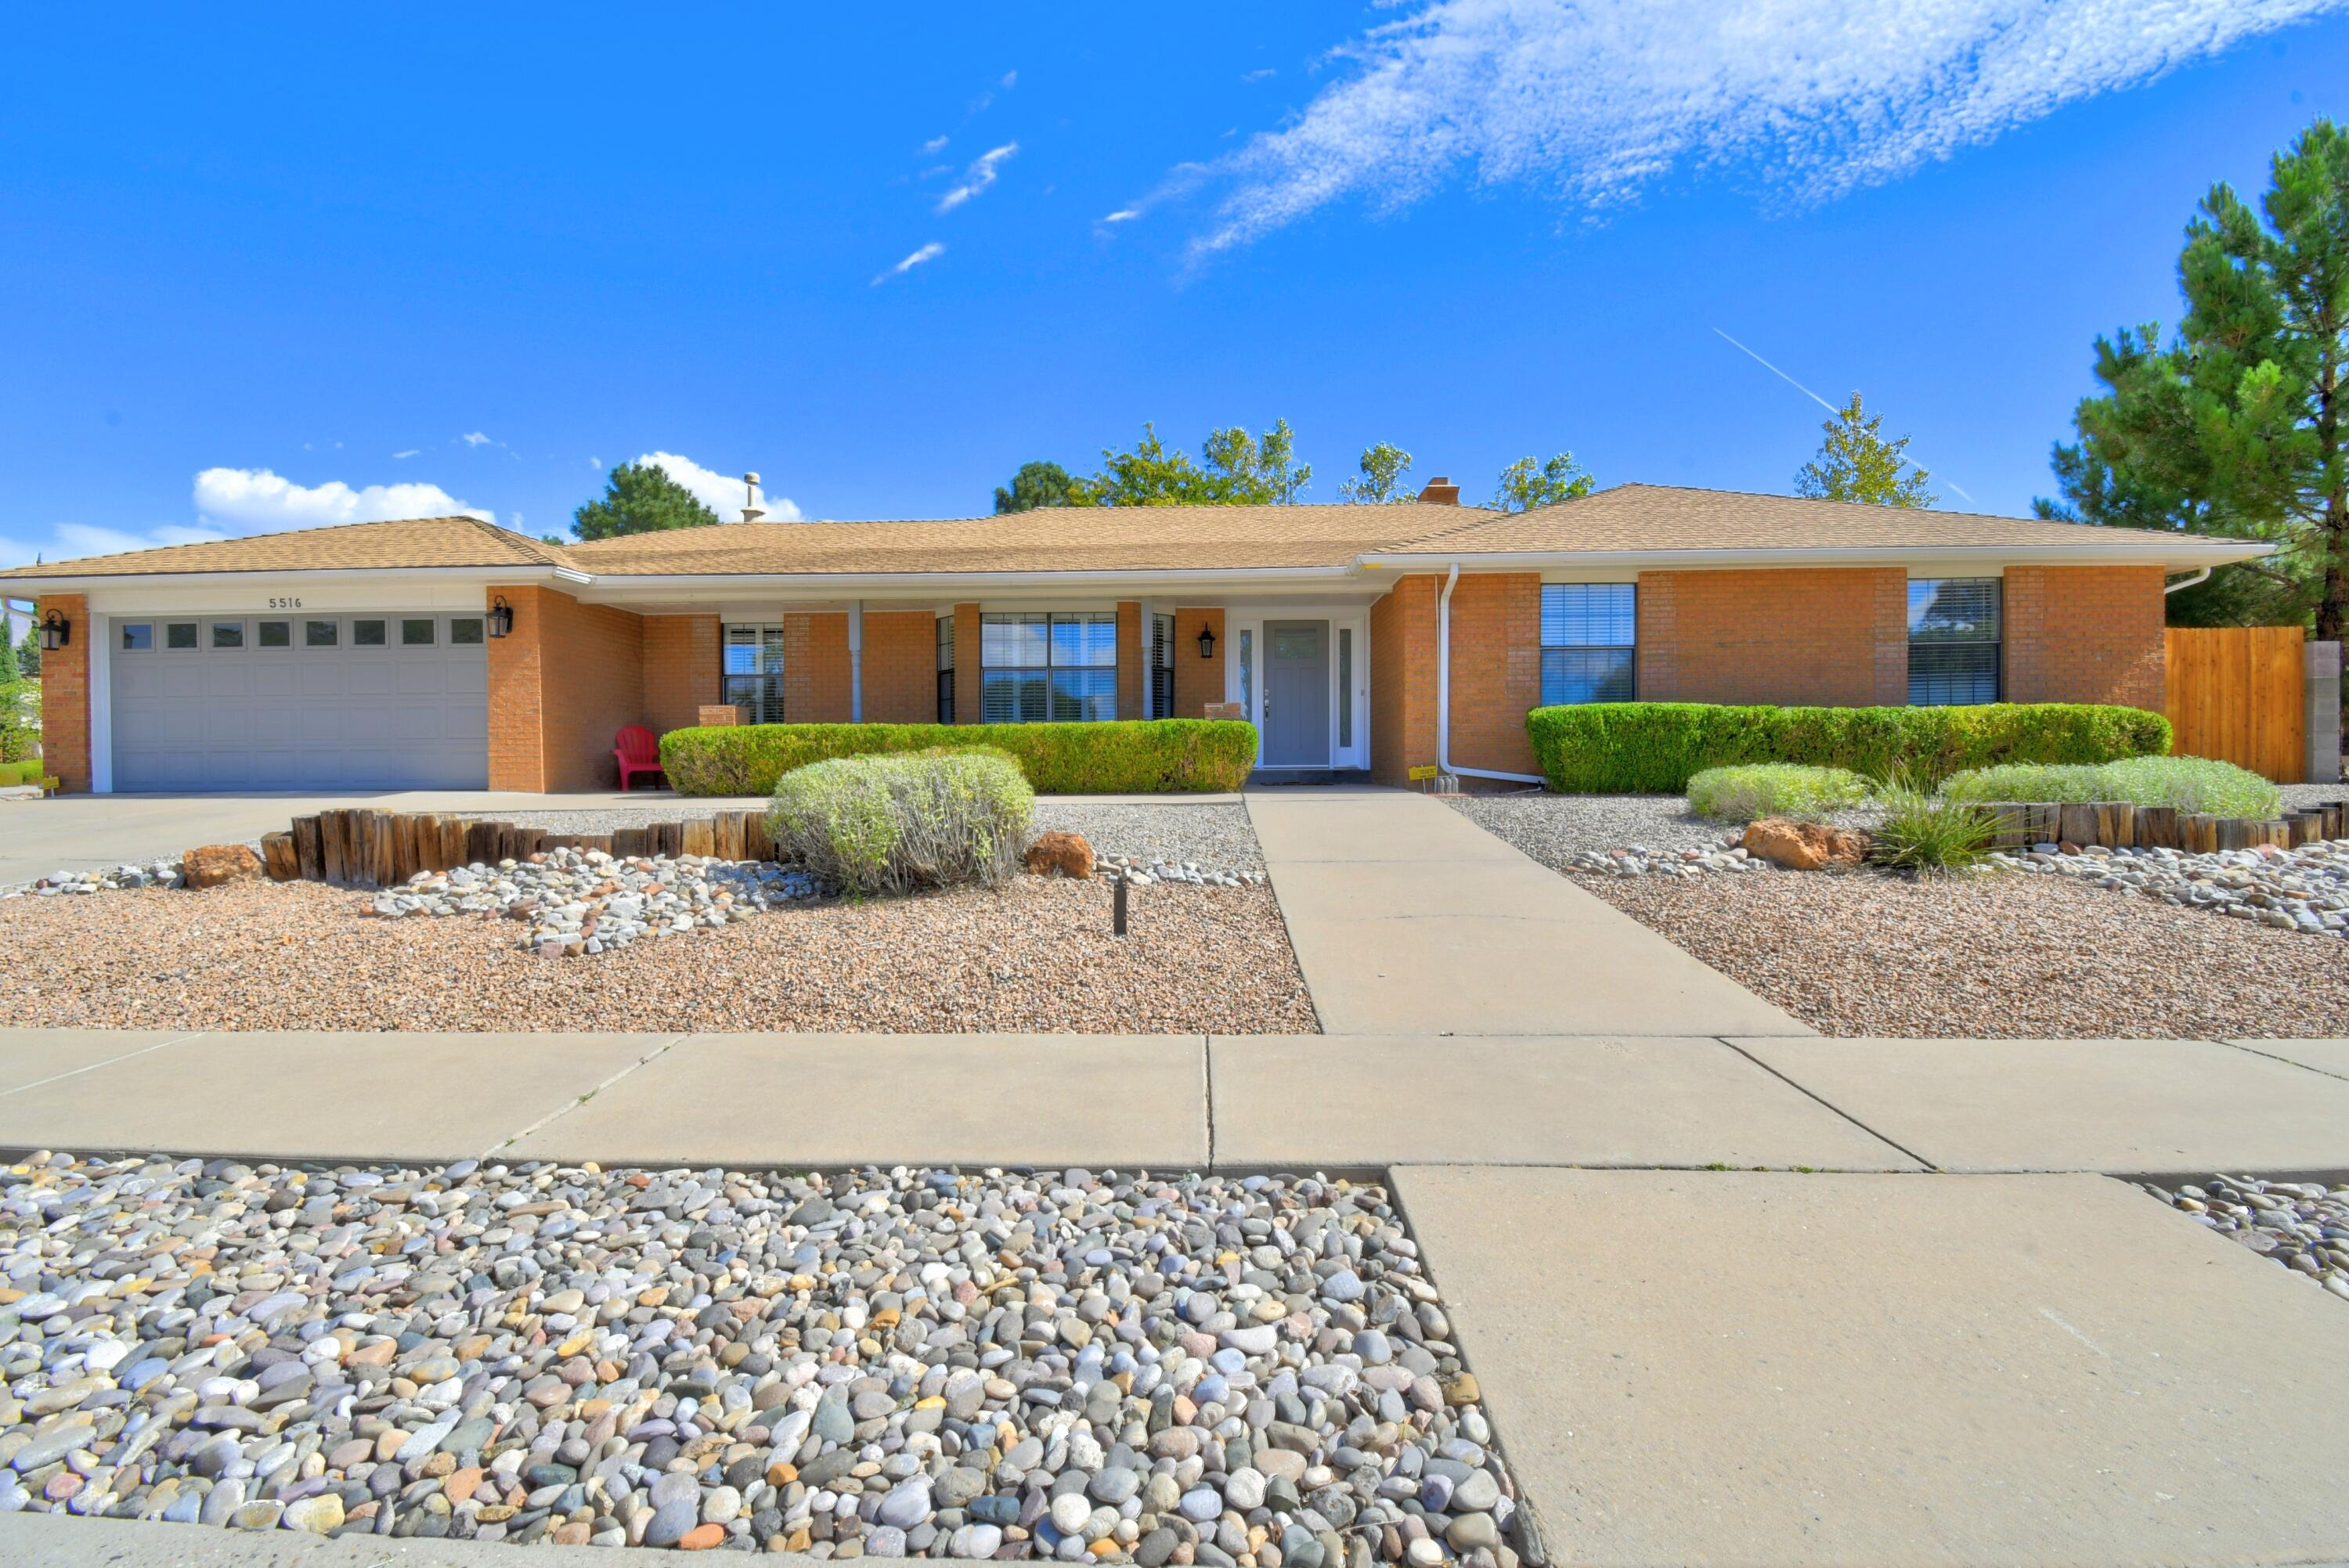 Awesome remodeled home situated on a large corner lot in Academy Estates. La Cueva HS district. Single story, brick, 4-BR & 3-BA. Mother-In-law bedroom w/it's own 3/4 bath. Flowing floorplan, kitchen is open to the family room that wraps around to the formal living/dining room. Large owner's suite w/split vanities & 2 walk-in closets.  Recent updates: Wood look tile throughout, updated kitchen and baths, tile backsplash, baseboards, stacked  stone fireplace, Granite counters in kitchen & vanities, fresh paint, hardware & light fixtures, entry door, hot water heater, cedar fence & so much more. Easy care front yard w/ drip system. Backyard features lush grass, fruit trees & large gardening area, covered patio w/views of the Sandias, & backyard access for RV.